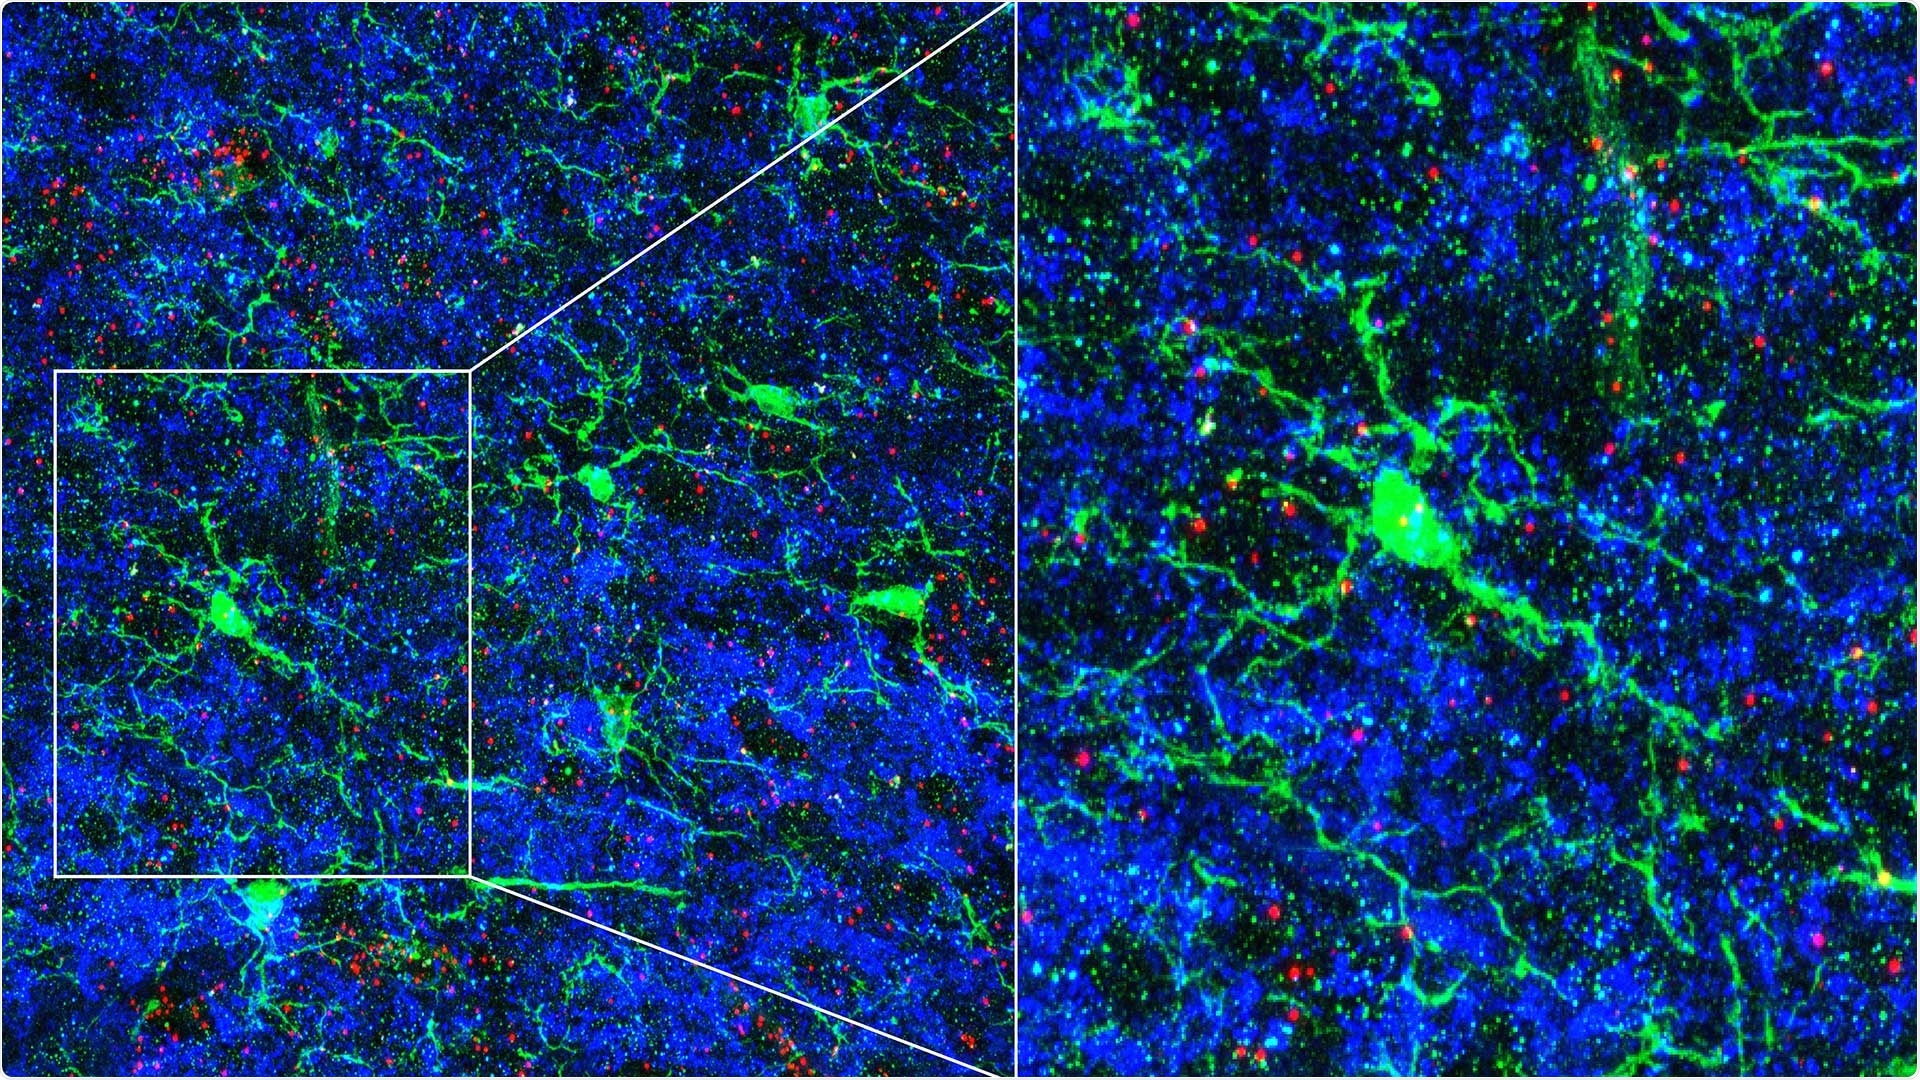 Study shows how neural circuits are refined in response to sensory cues